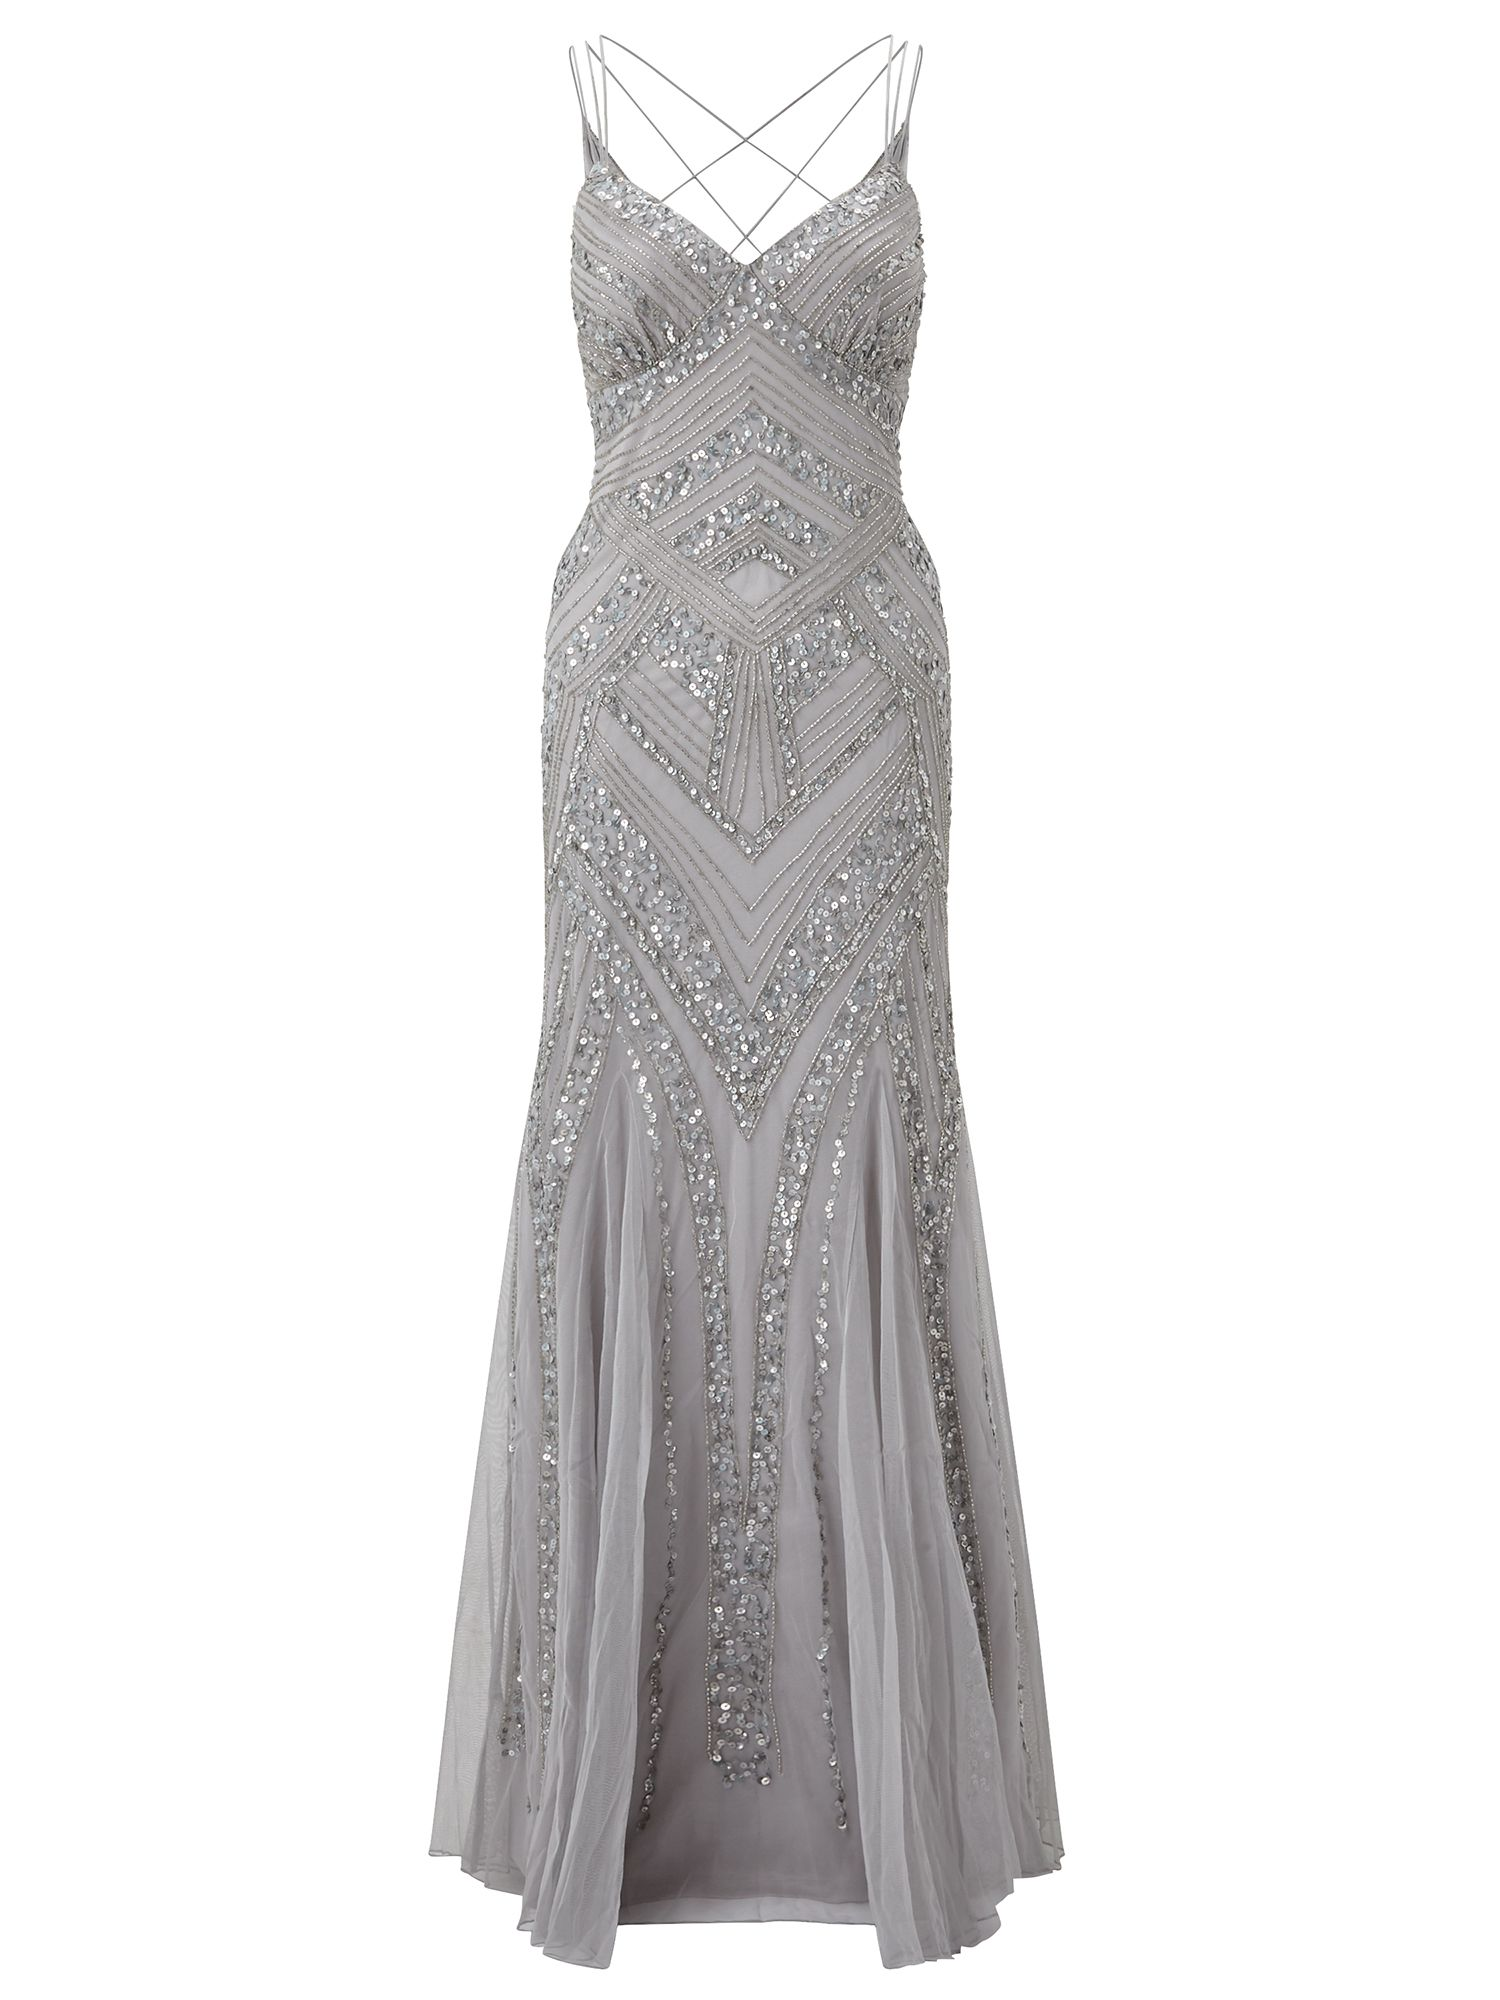 Ariella Perla Maxi Dress, Silver Silverlic